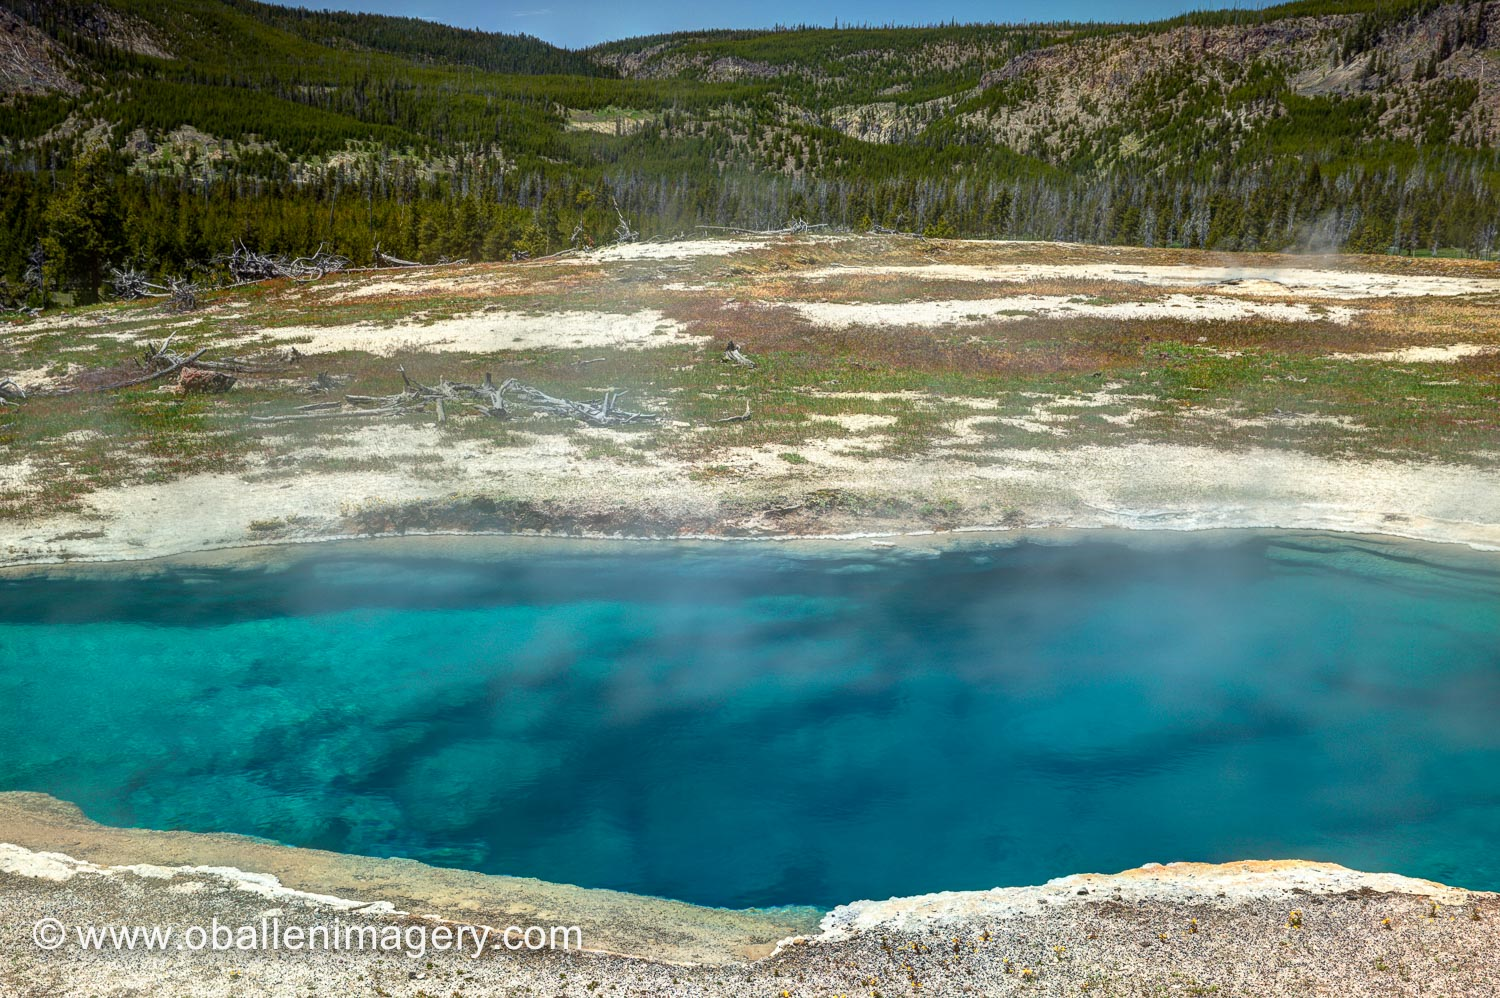 This beautiful blue pool is located across the road from Biscuit Basin.